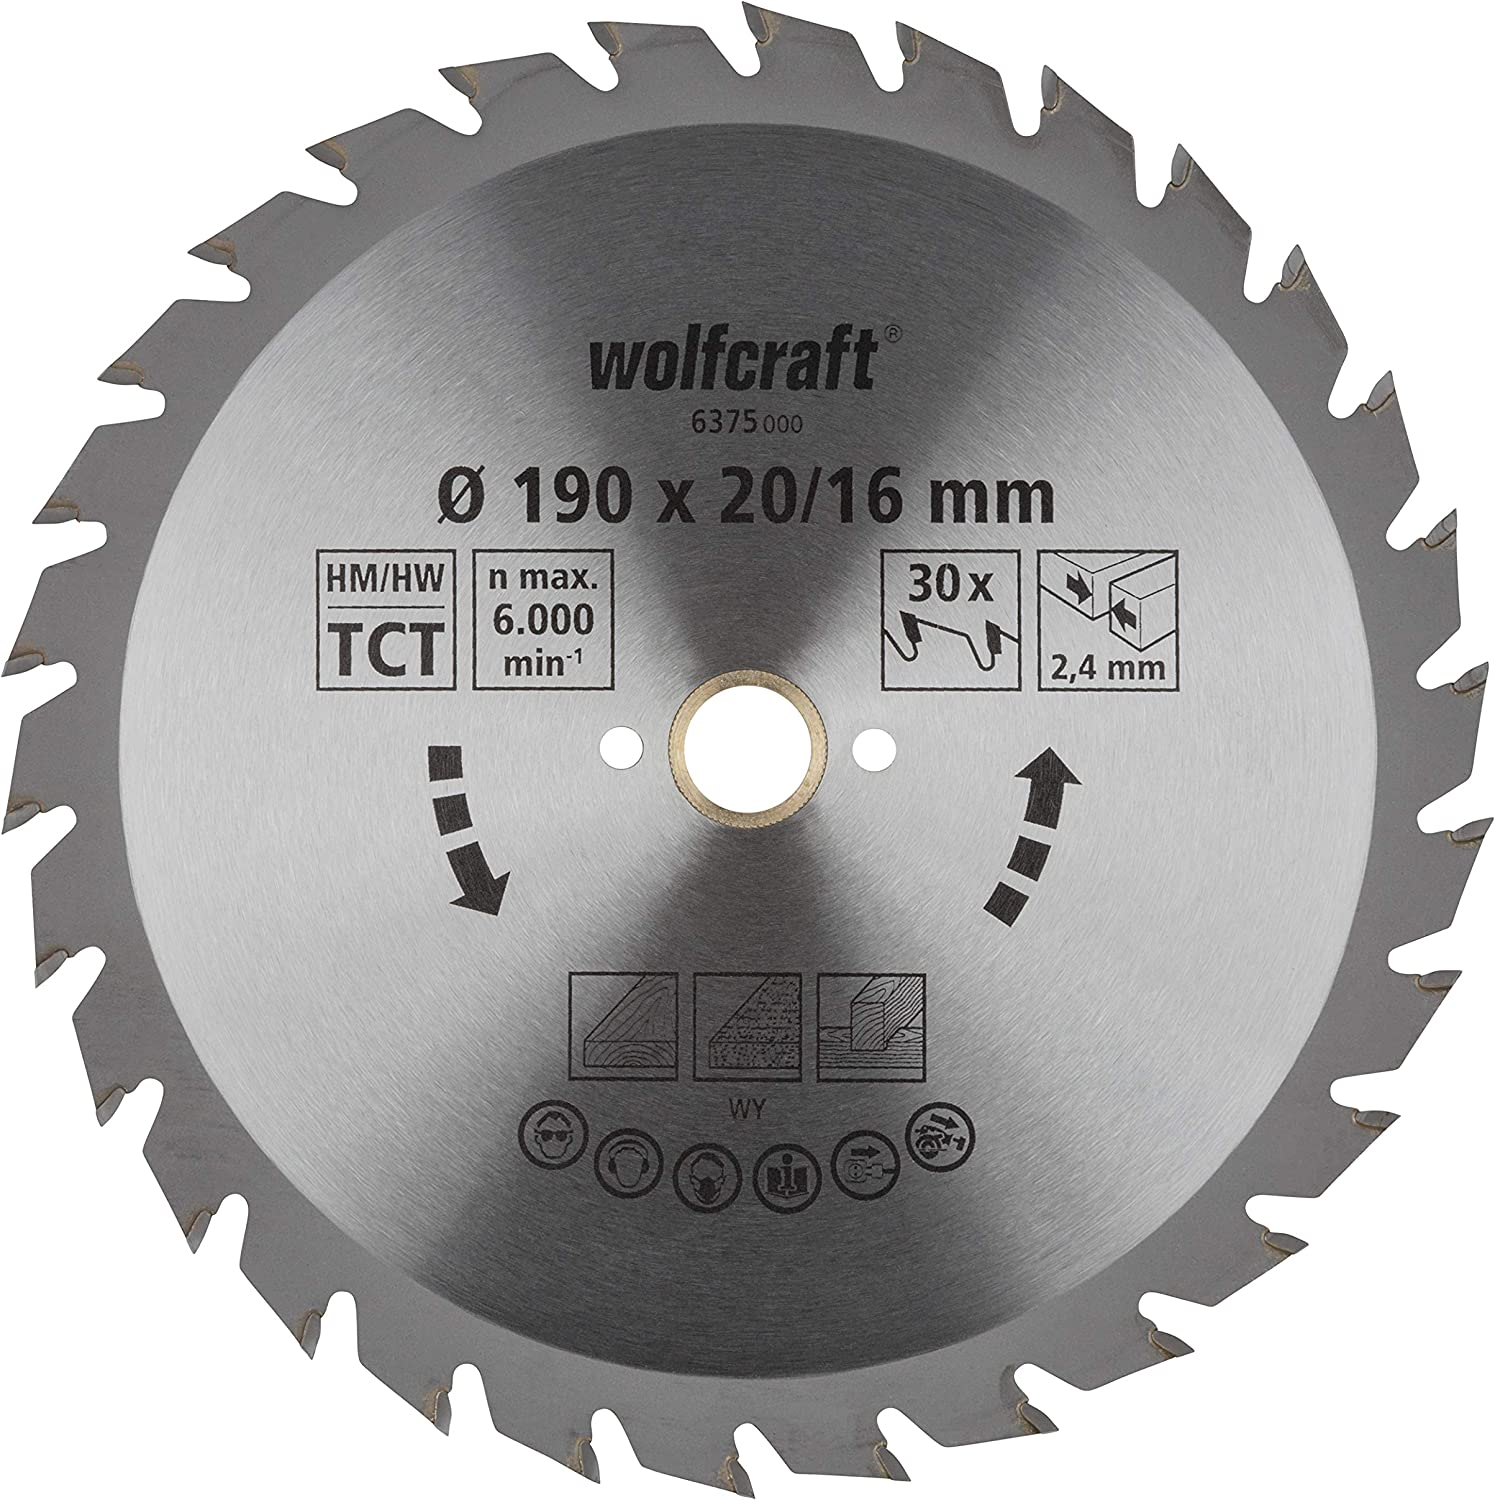 Wolfcraft 6375000 190 x 16 2.4mm with 30 Saw Blade New arrival Seasonal Wrap Introduction Circular CT